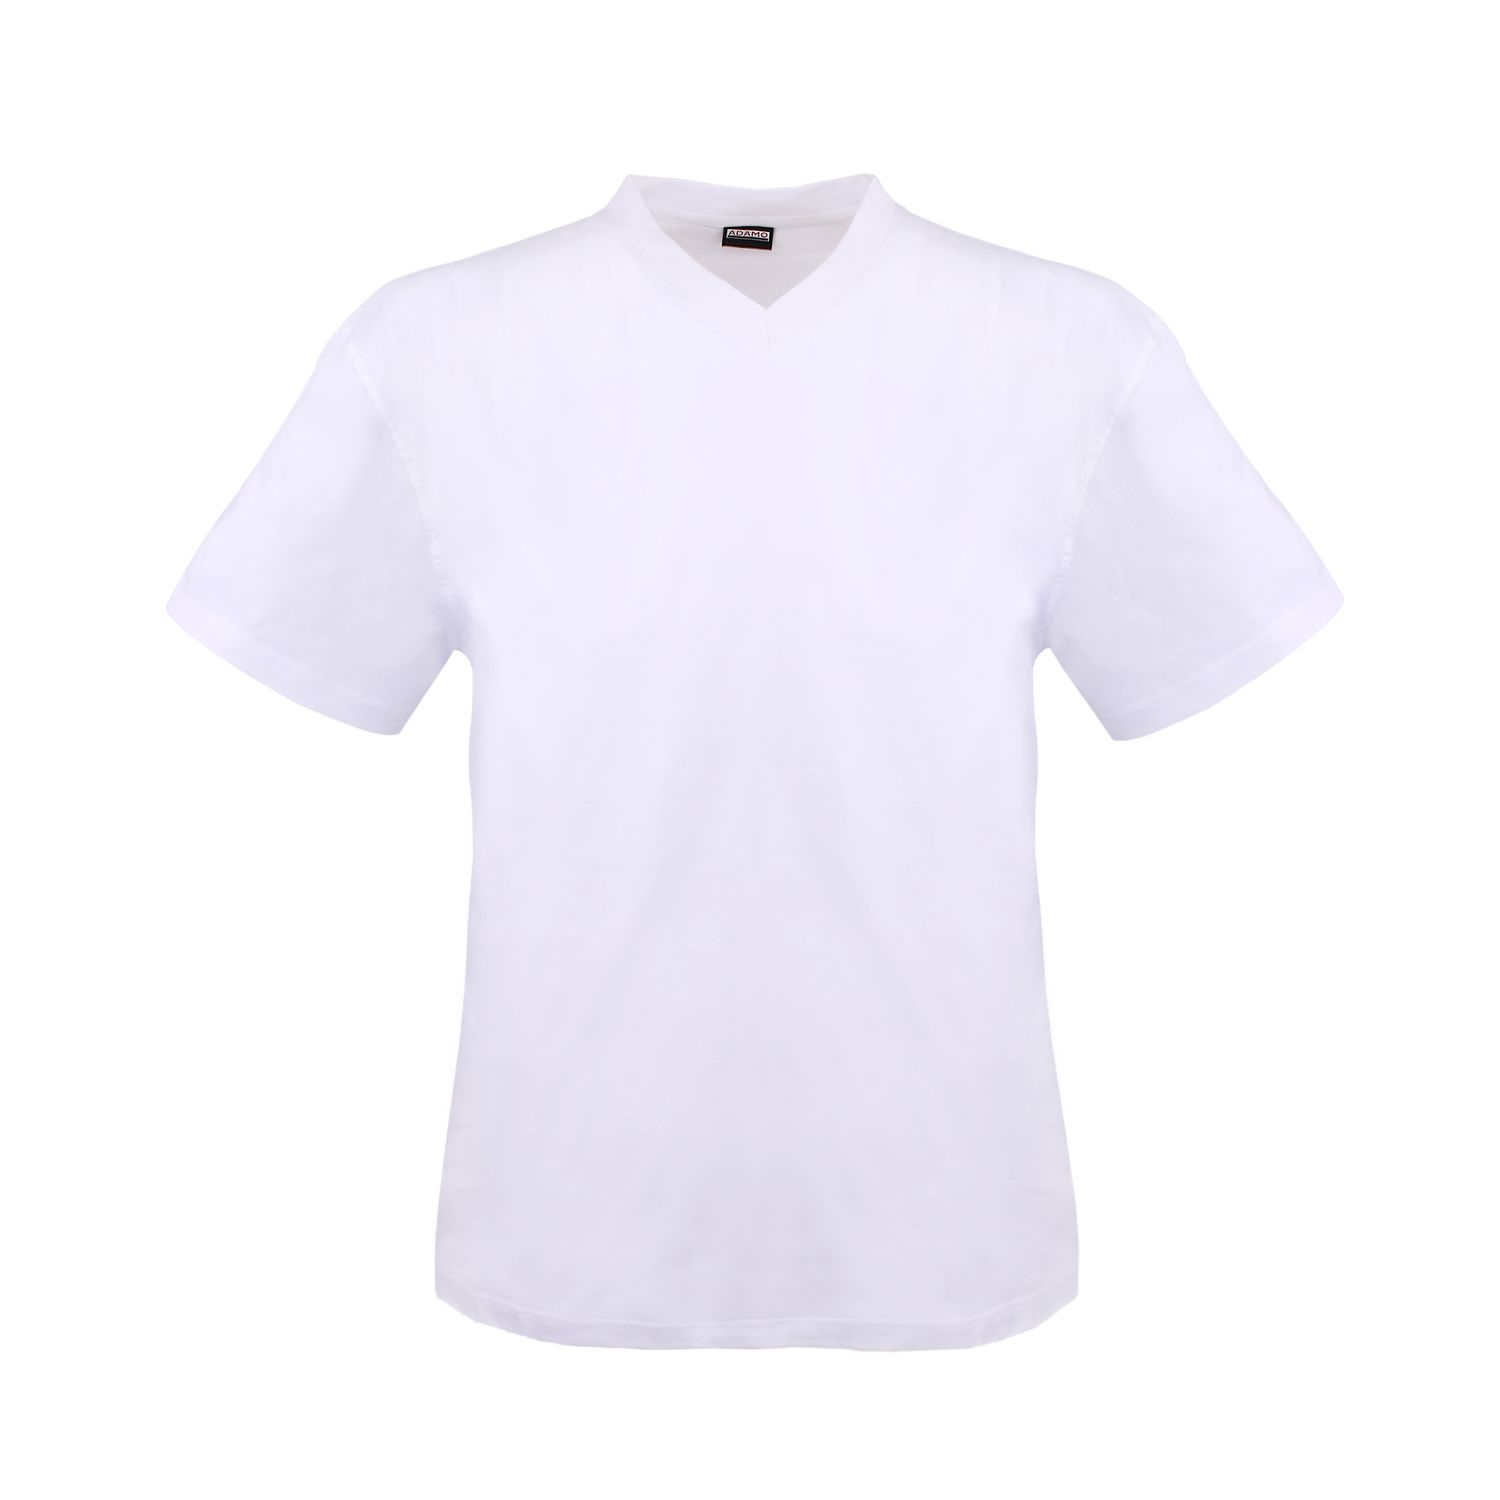 Detail Image to White double pack MAVERICK v-neck by ADAMO men fashion up to kingsize 10XL